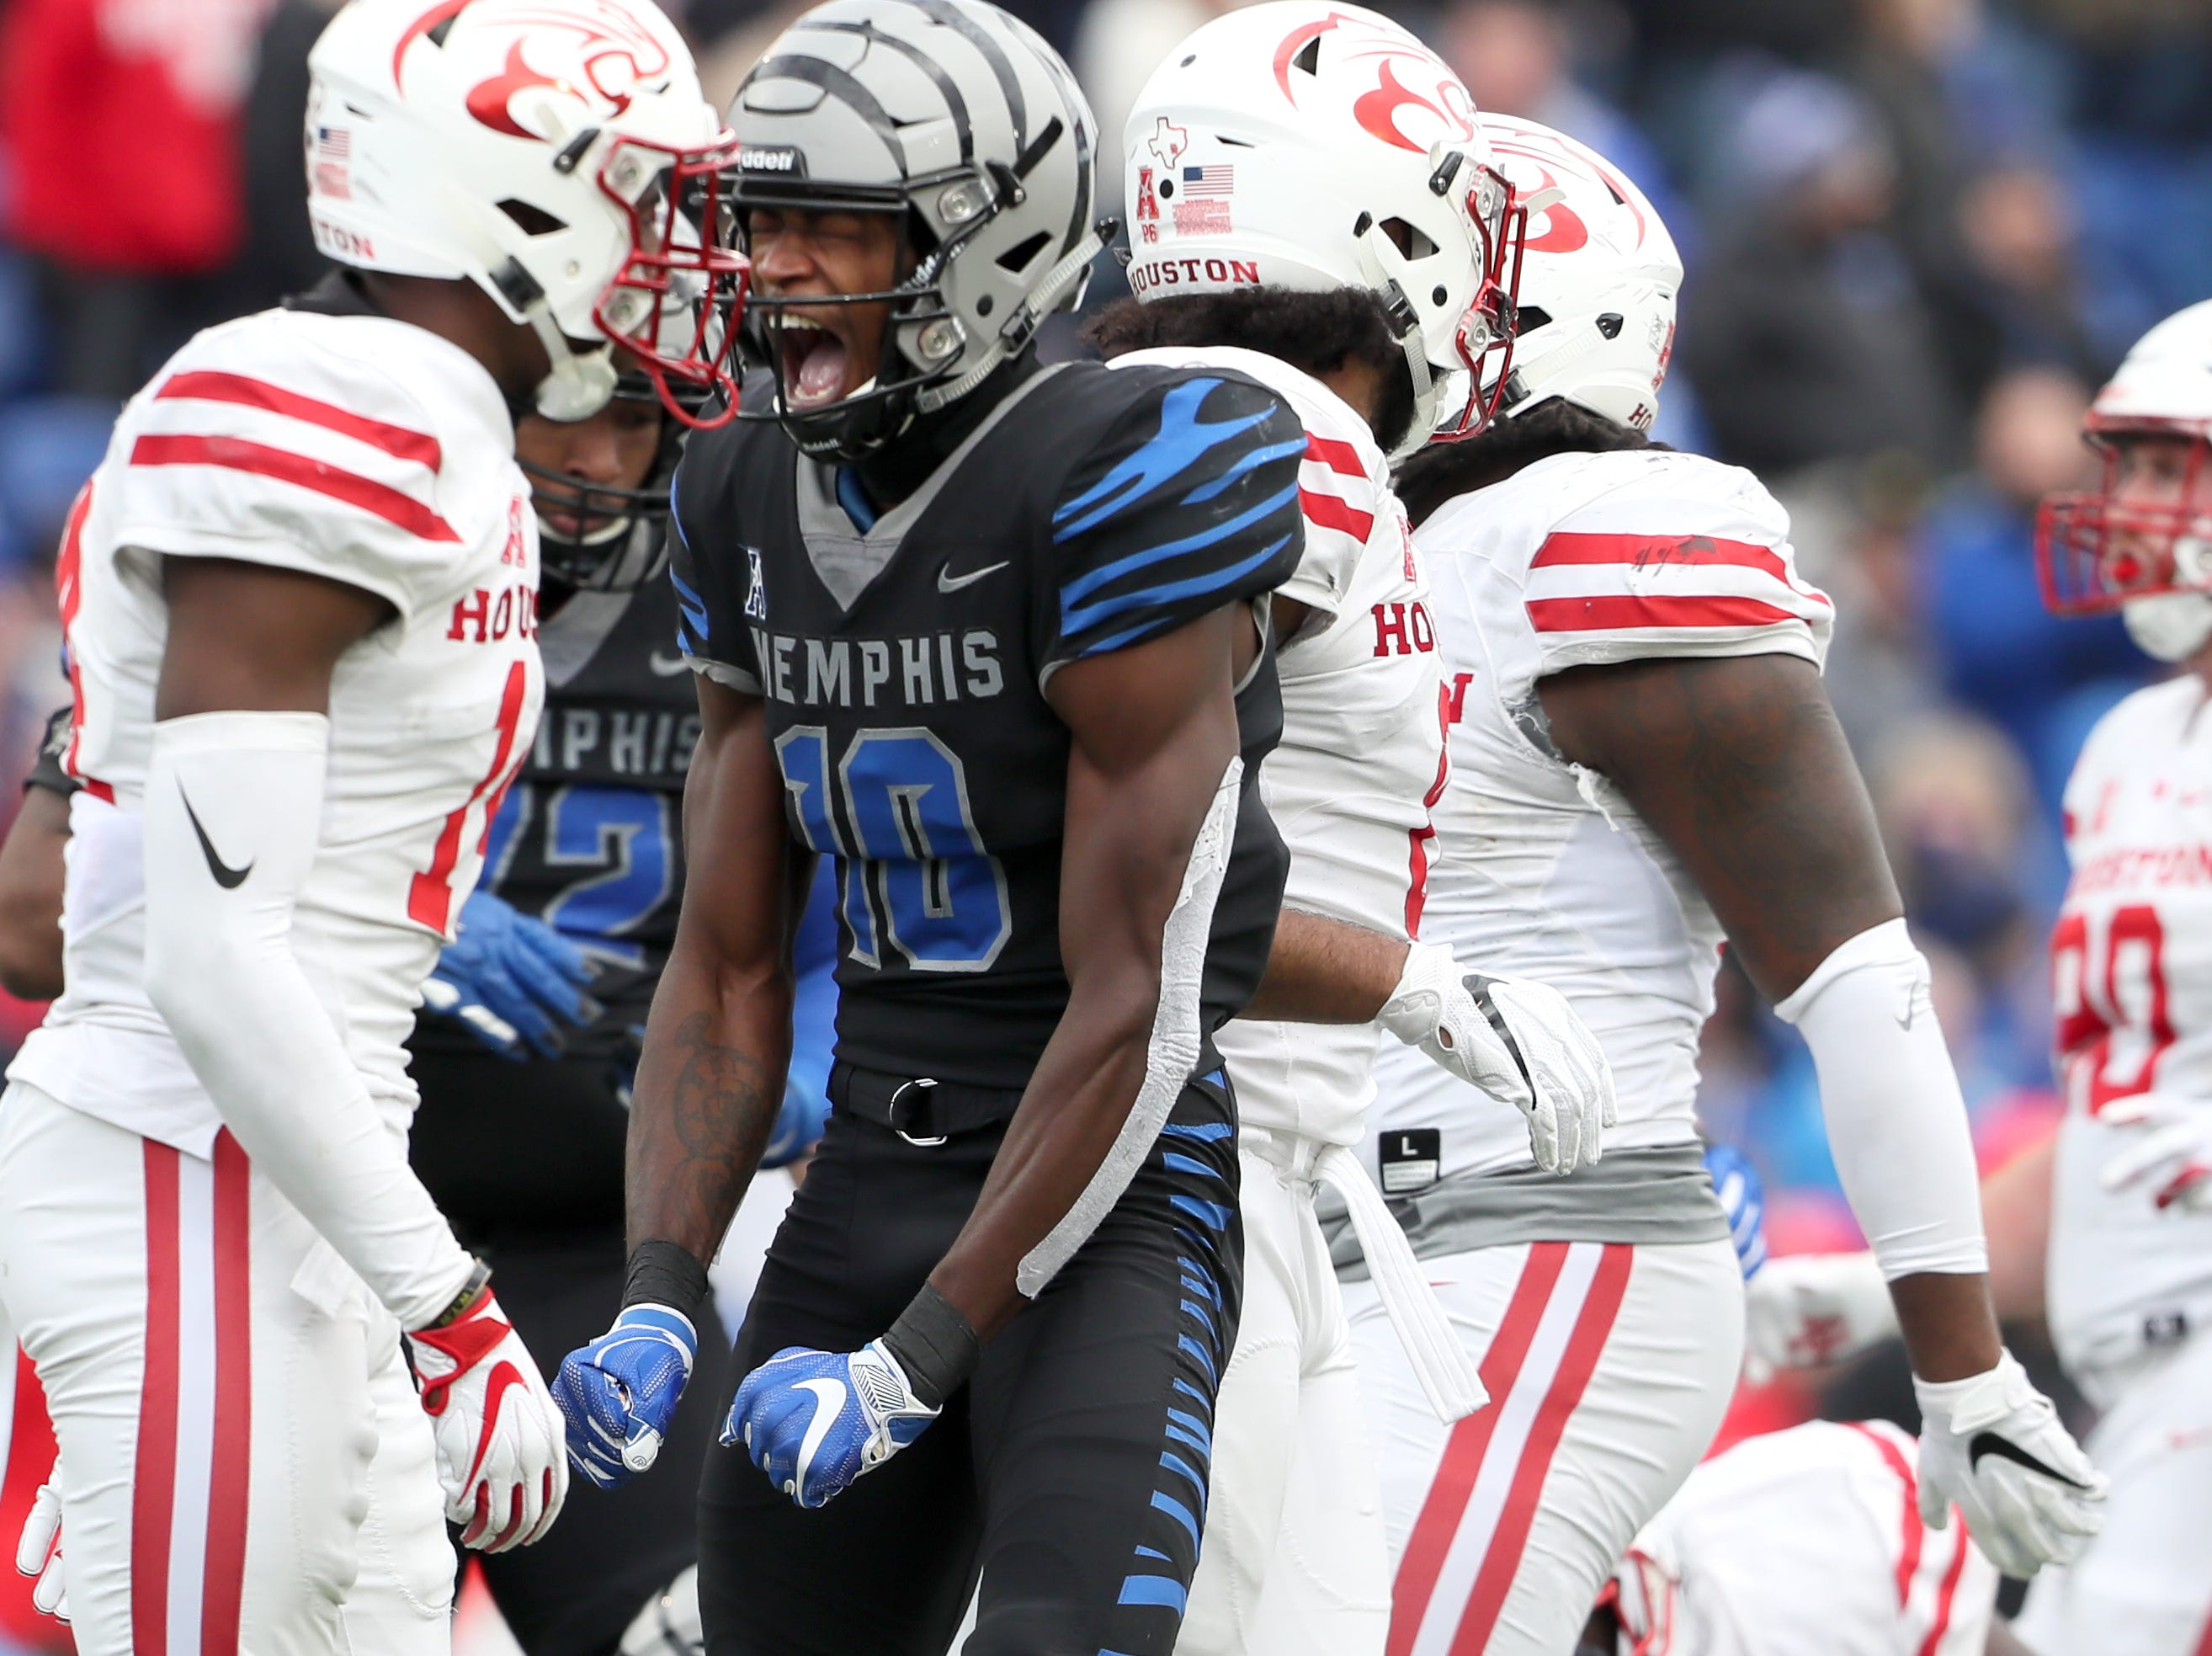 Memphis' Damonte Coxie celebrates a first down against the Houston Cougars as the Tigers win the AAC West title 52-31 at the Liberty Bowl on Friday, Nov. 23, 2018.